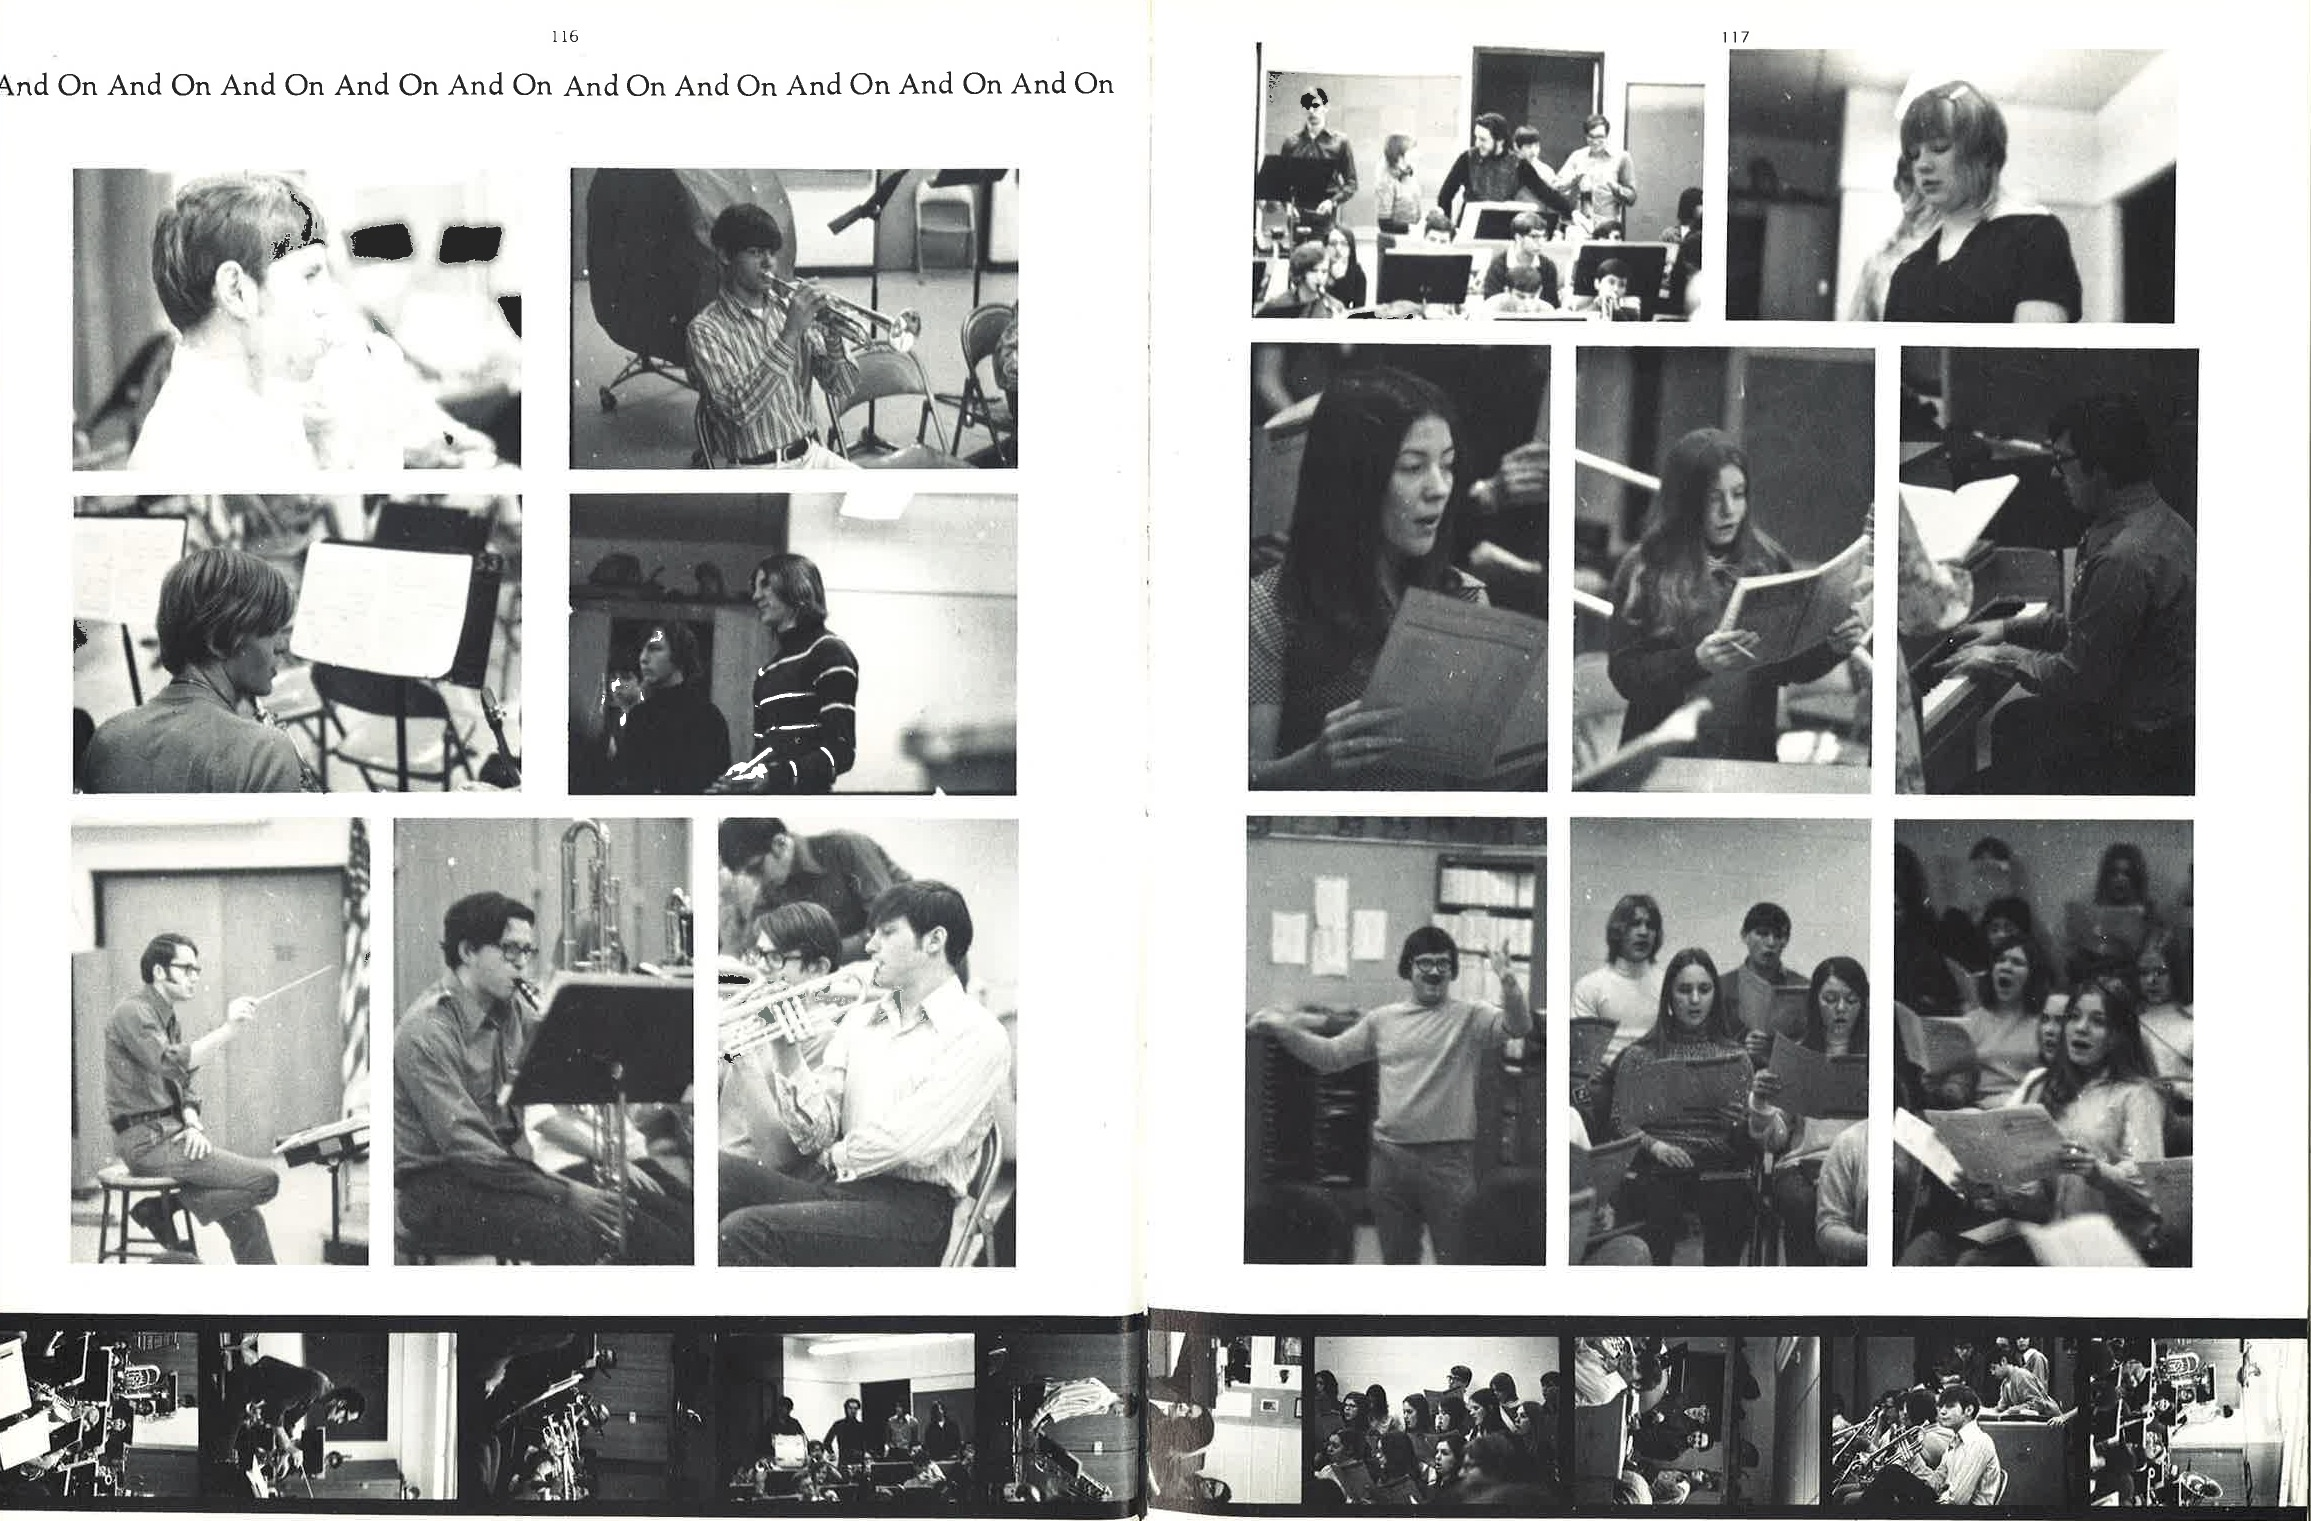 1972_Yearbook_116-117.jpg